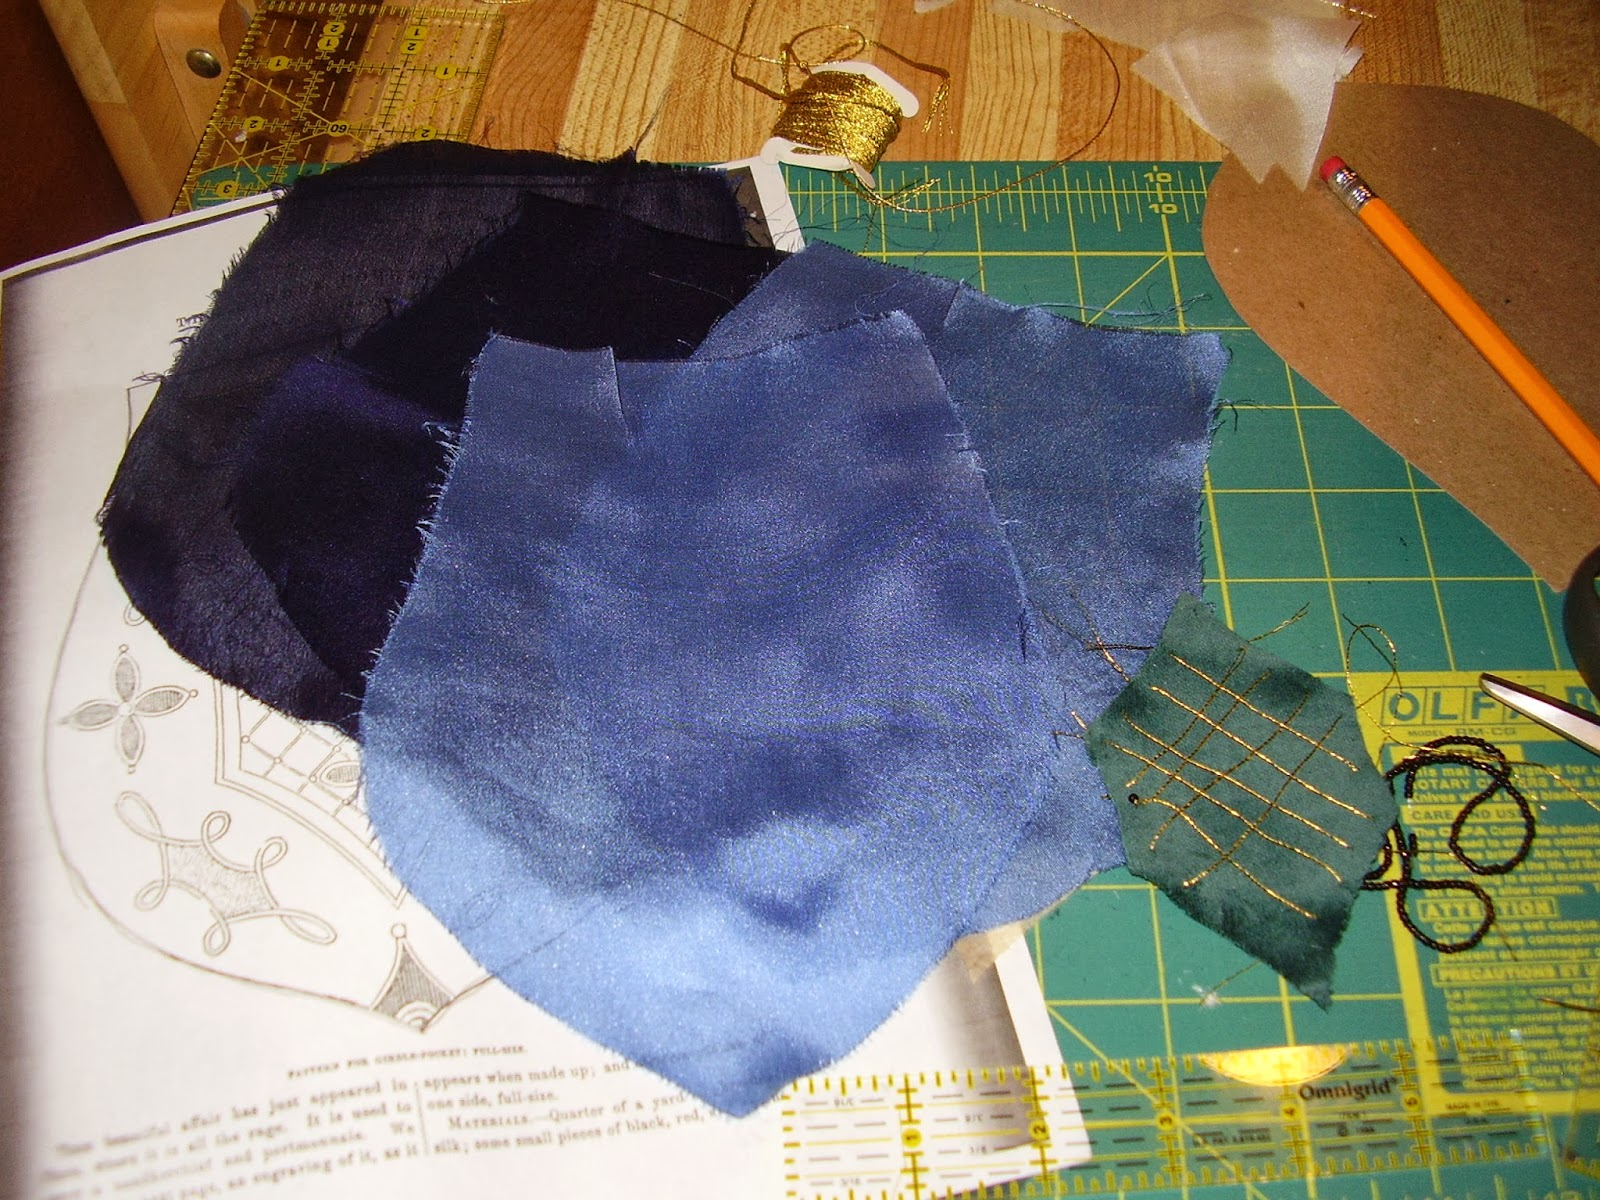 Dyed blue silk pieces and applique center for girdle pocket.